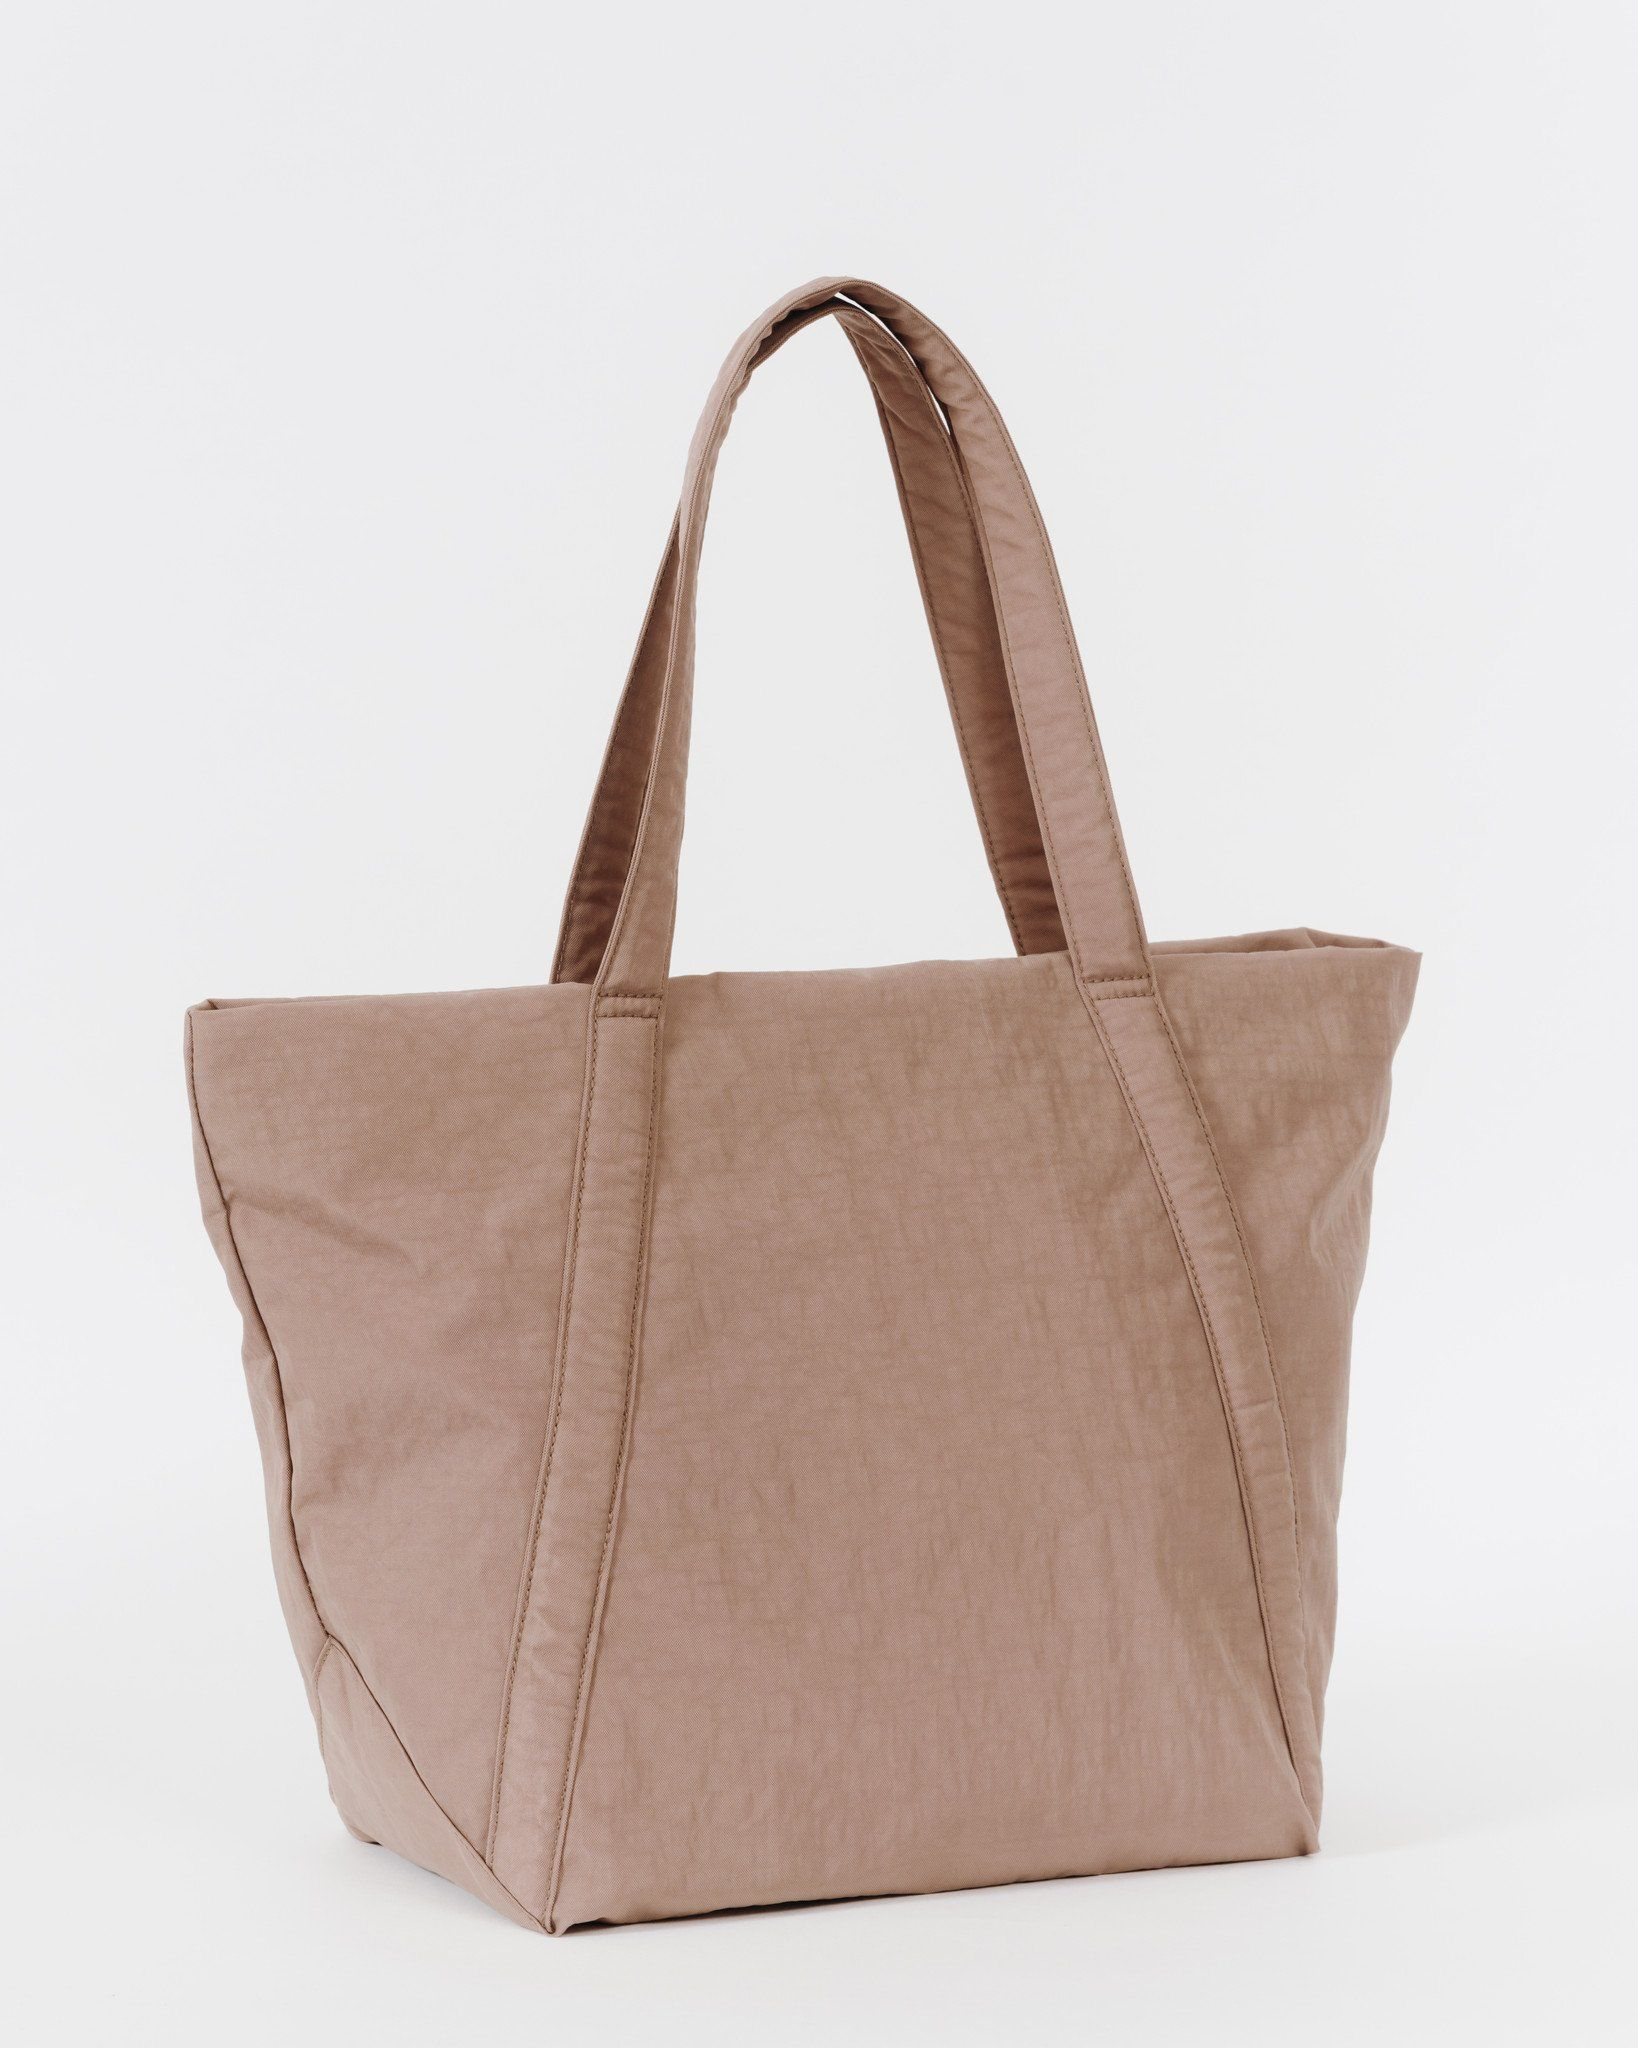 An easy bag for daily toting. Top zipper closure. Detachable interior zip pouch. Packs into its own pouch for easy storage. **** 12.8 in. W x 13.8 in. H x 8 in.